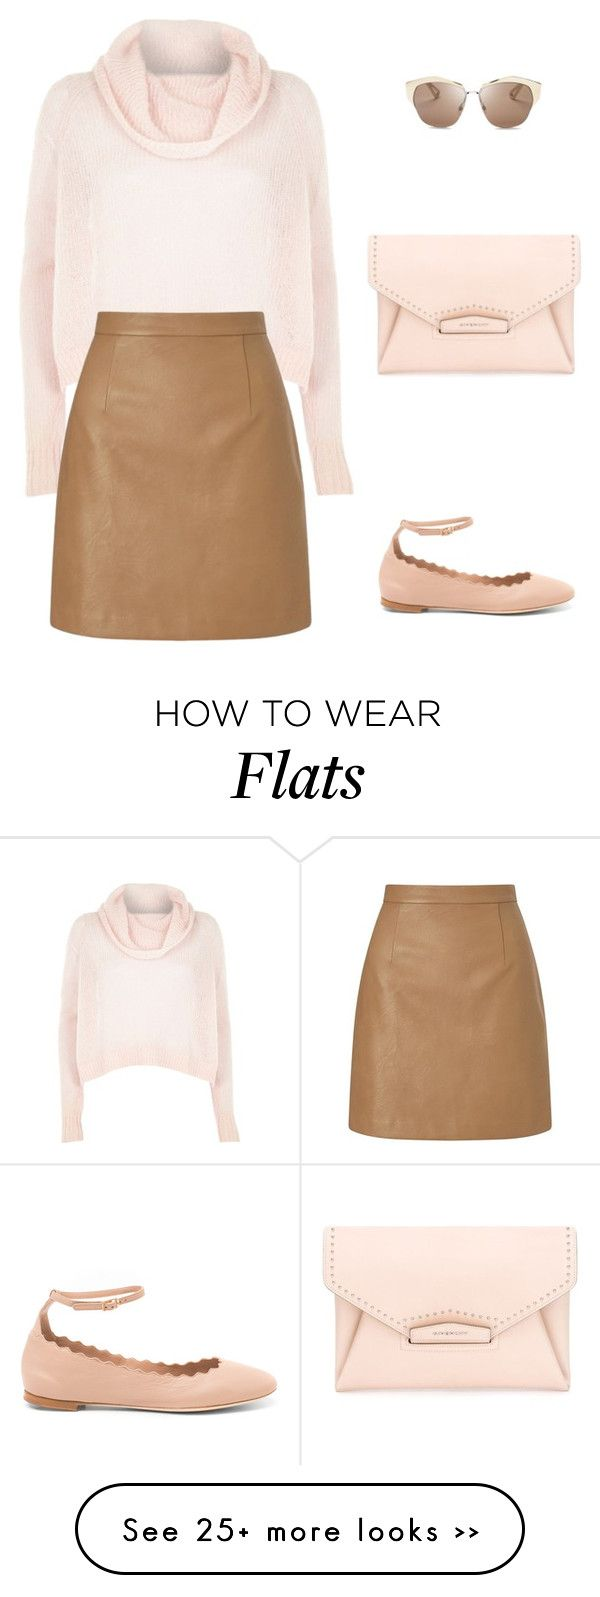 """""""Cotton candy pastel"""" by marta-isabella on Polyvore featuring River Island, Lipsy, Chloé, Givenchy and Christian Dior"""